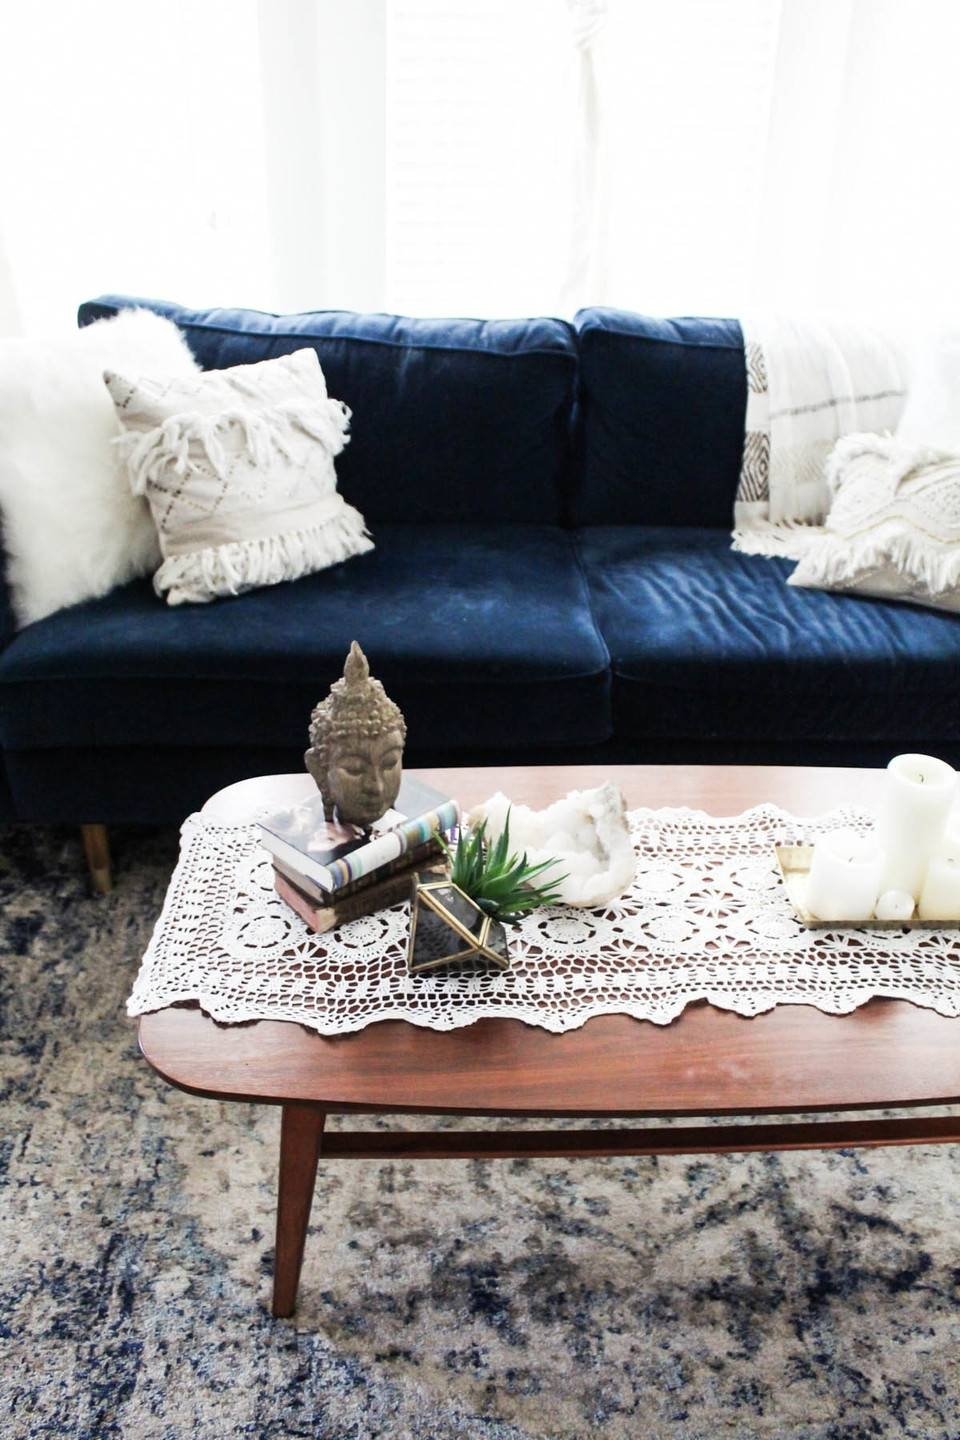 3 Ways To Style A Coffee Table - Whitney Port inside Buddha Coffee Tables (Image 5 of 30)